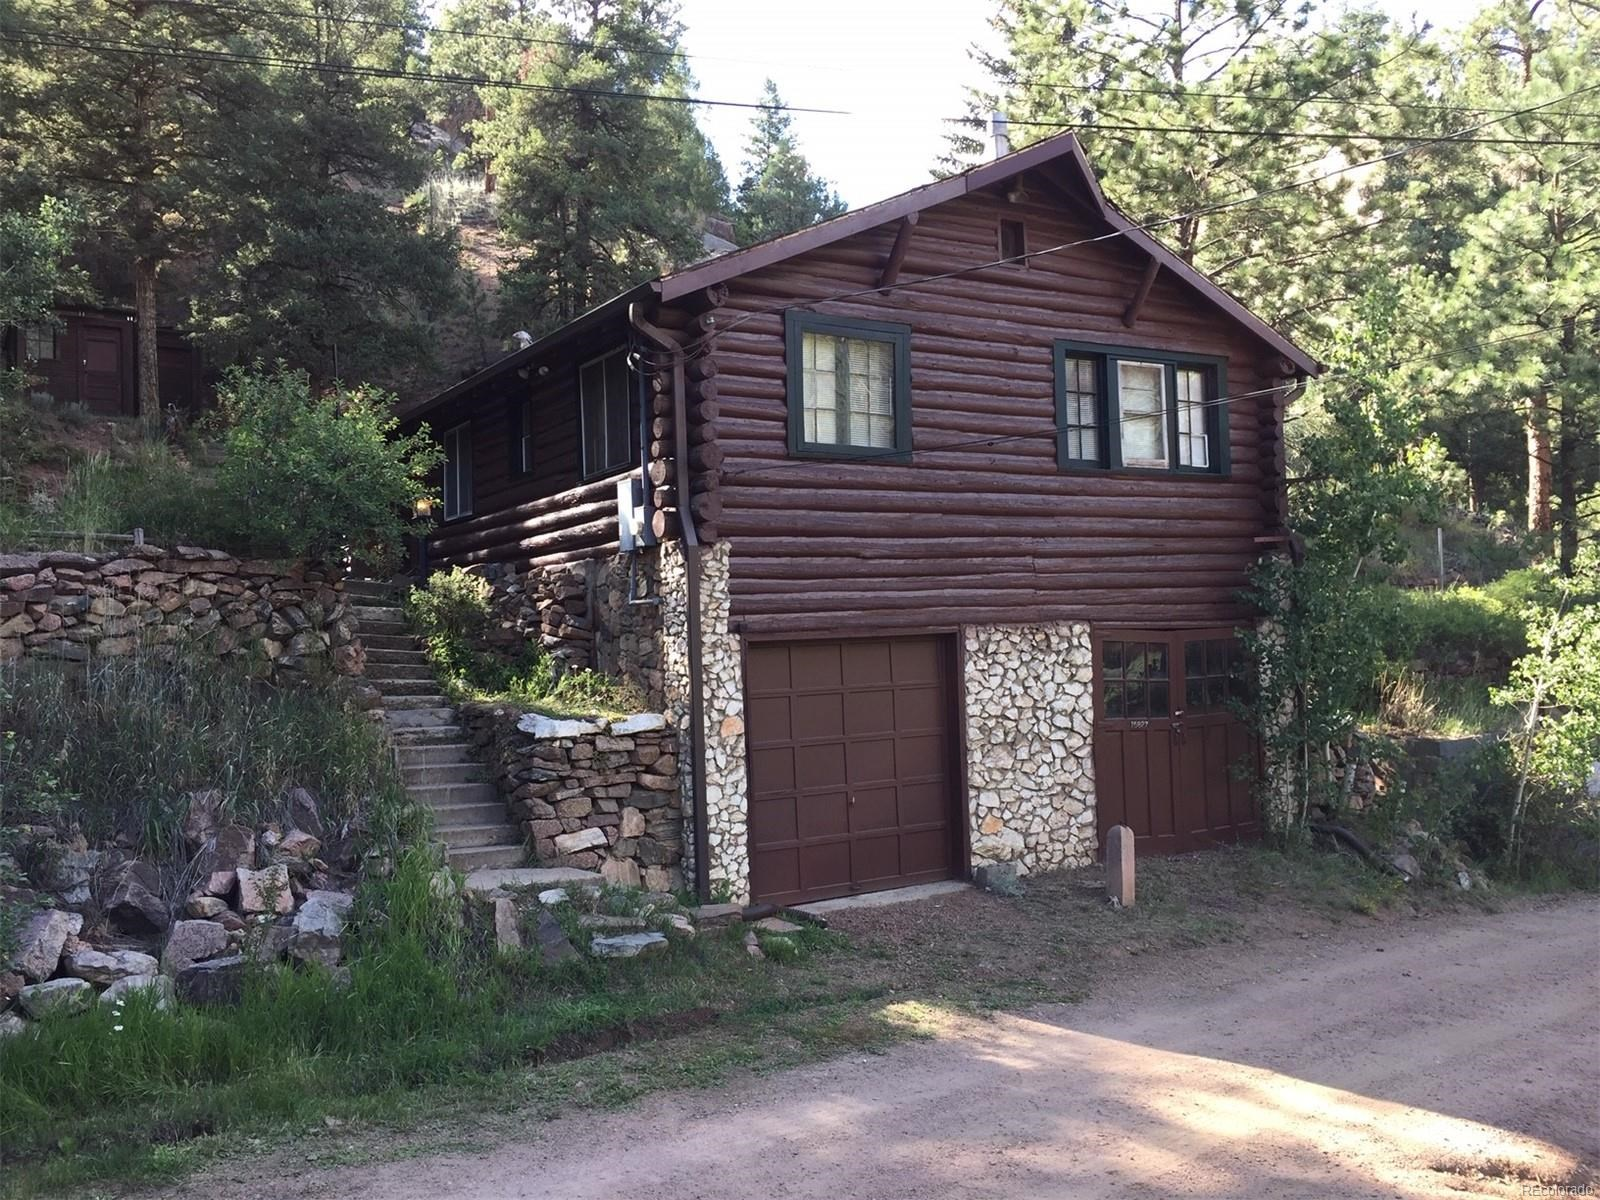 MLS# 3100431 - 1 - 15827 Old Stagecoach Road, Pine, CO 80470